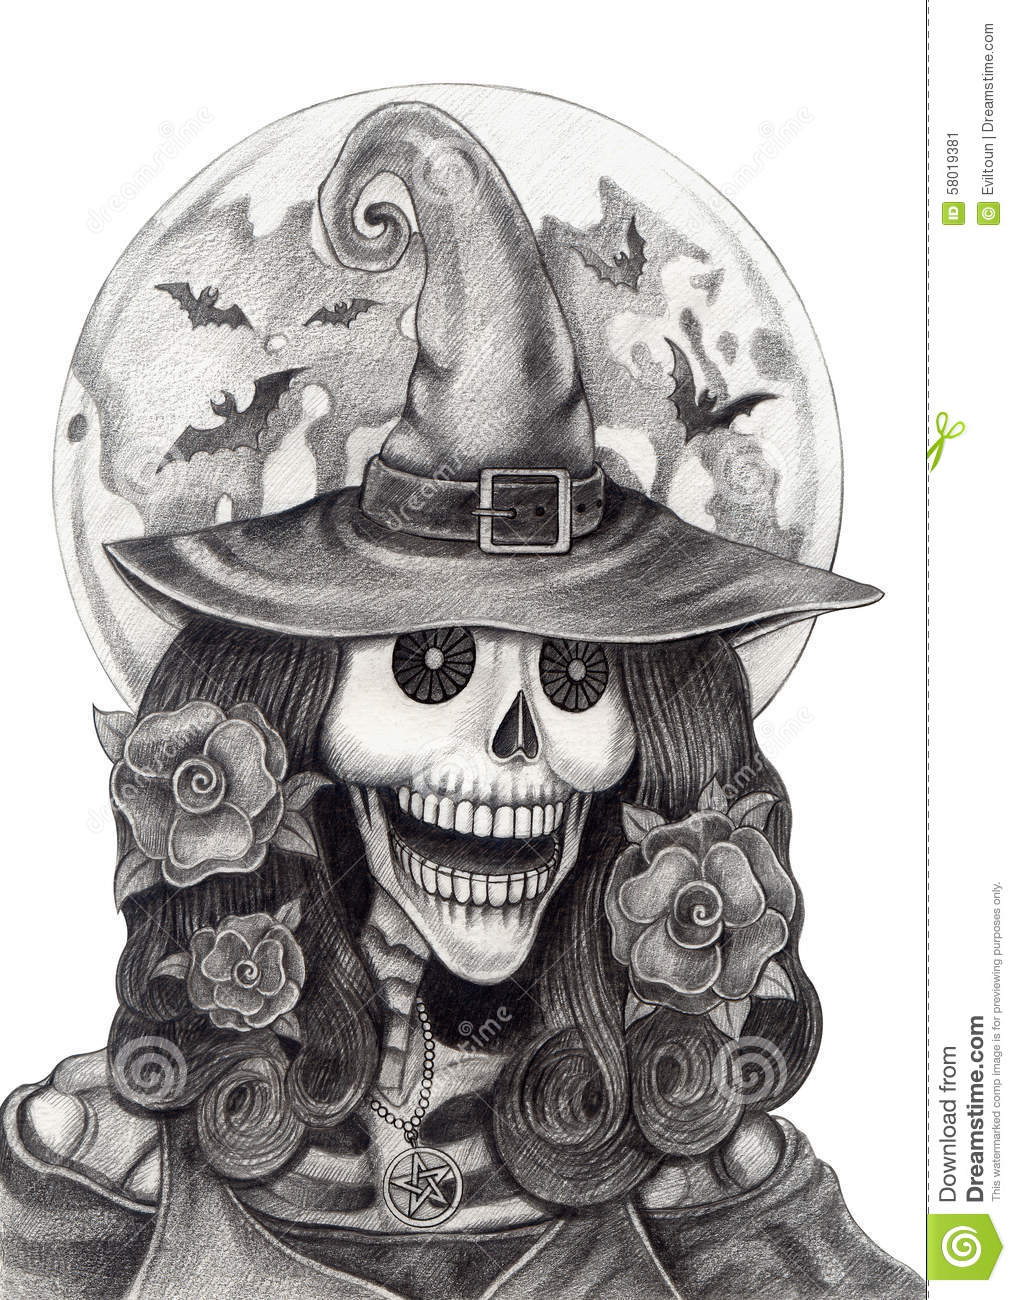 Line Drawing Of Witches Face : Art skull witch halloween day stock illustration image